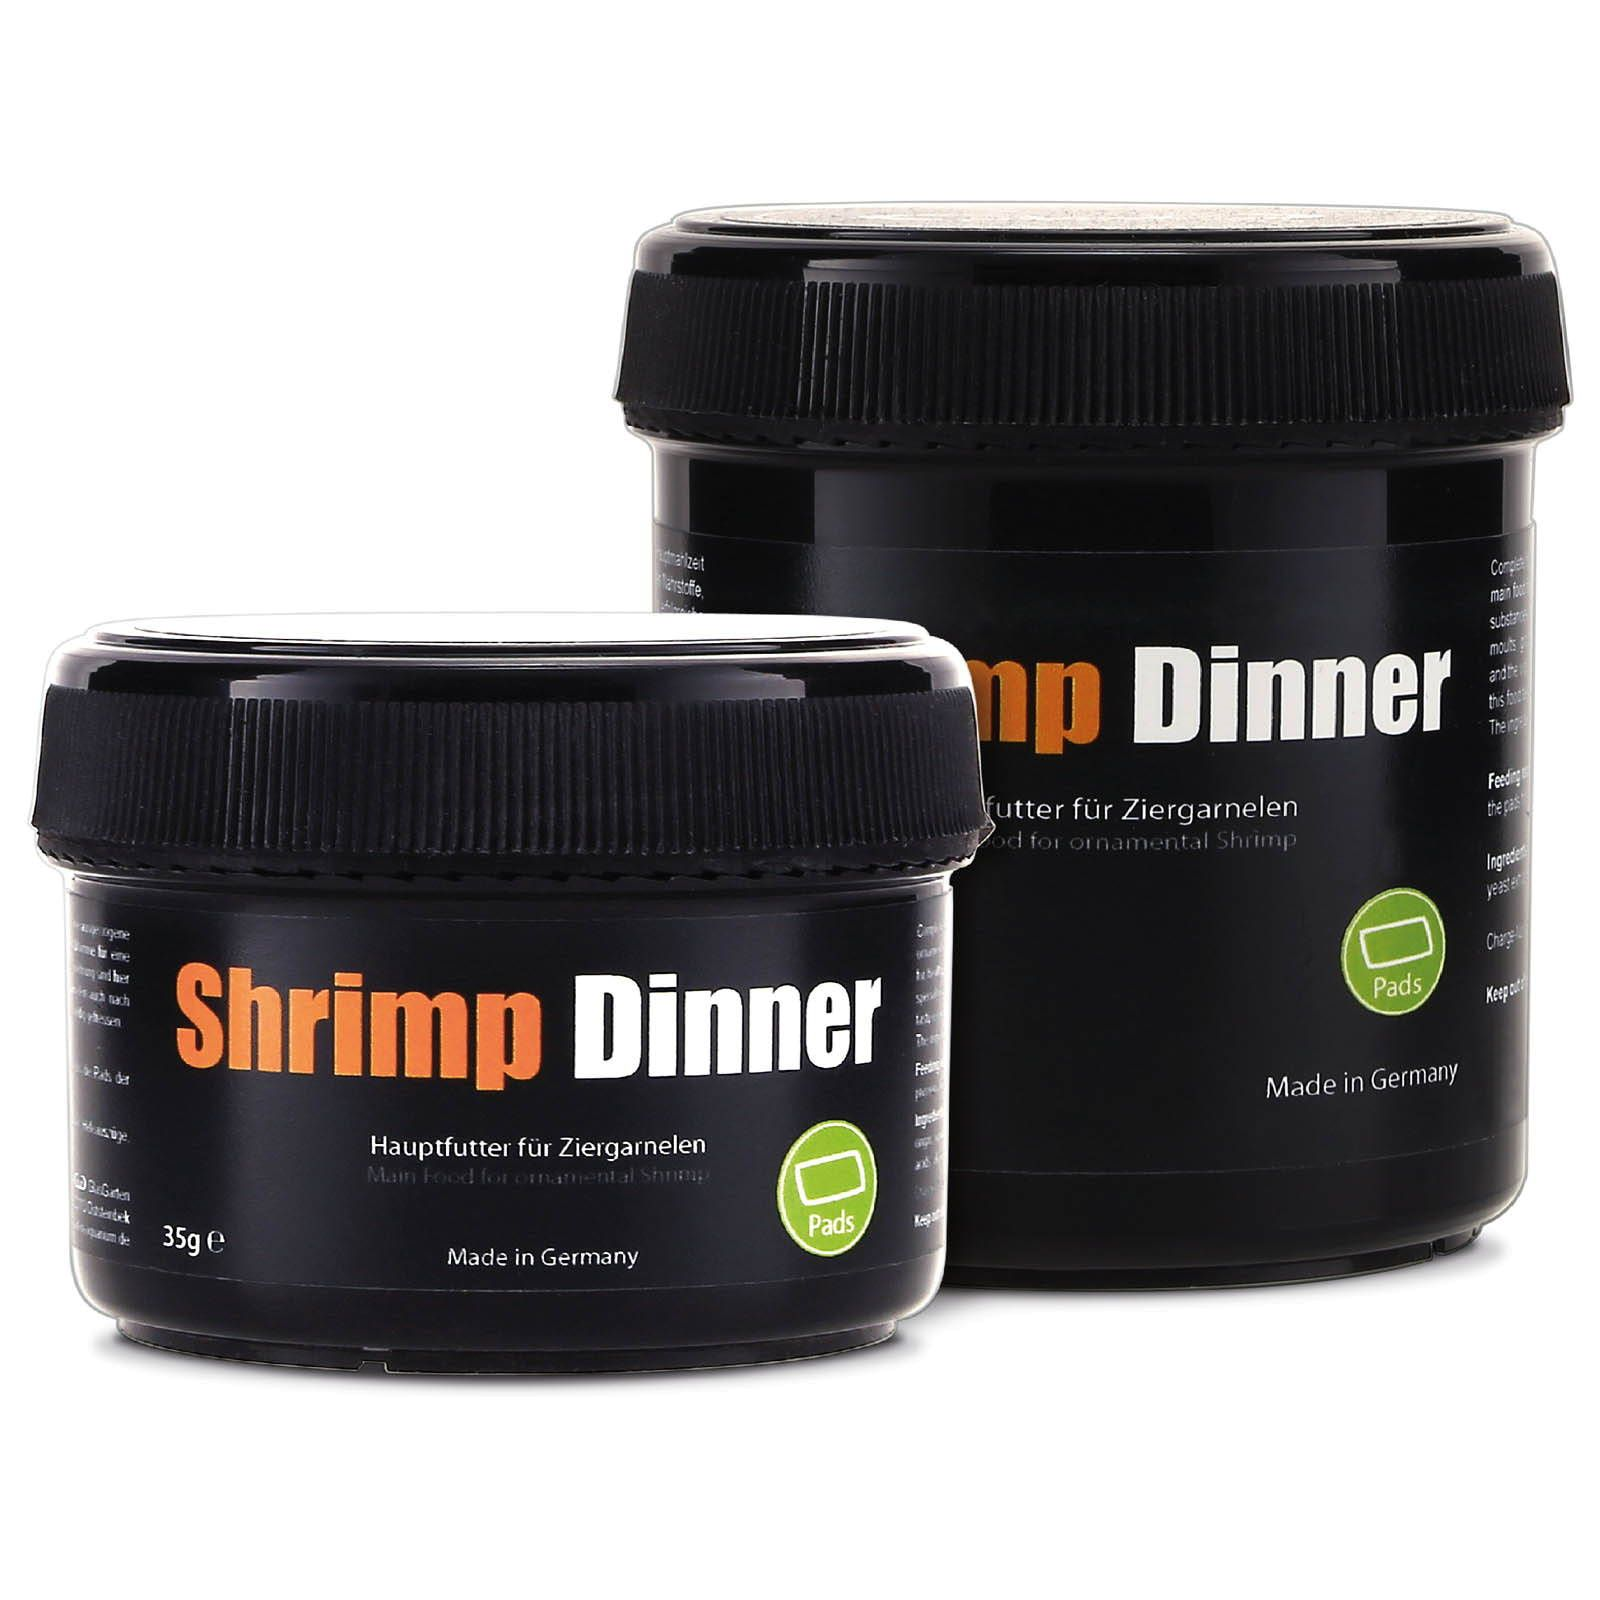 GlasGarten - Shrimp Dinner - Pads